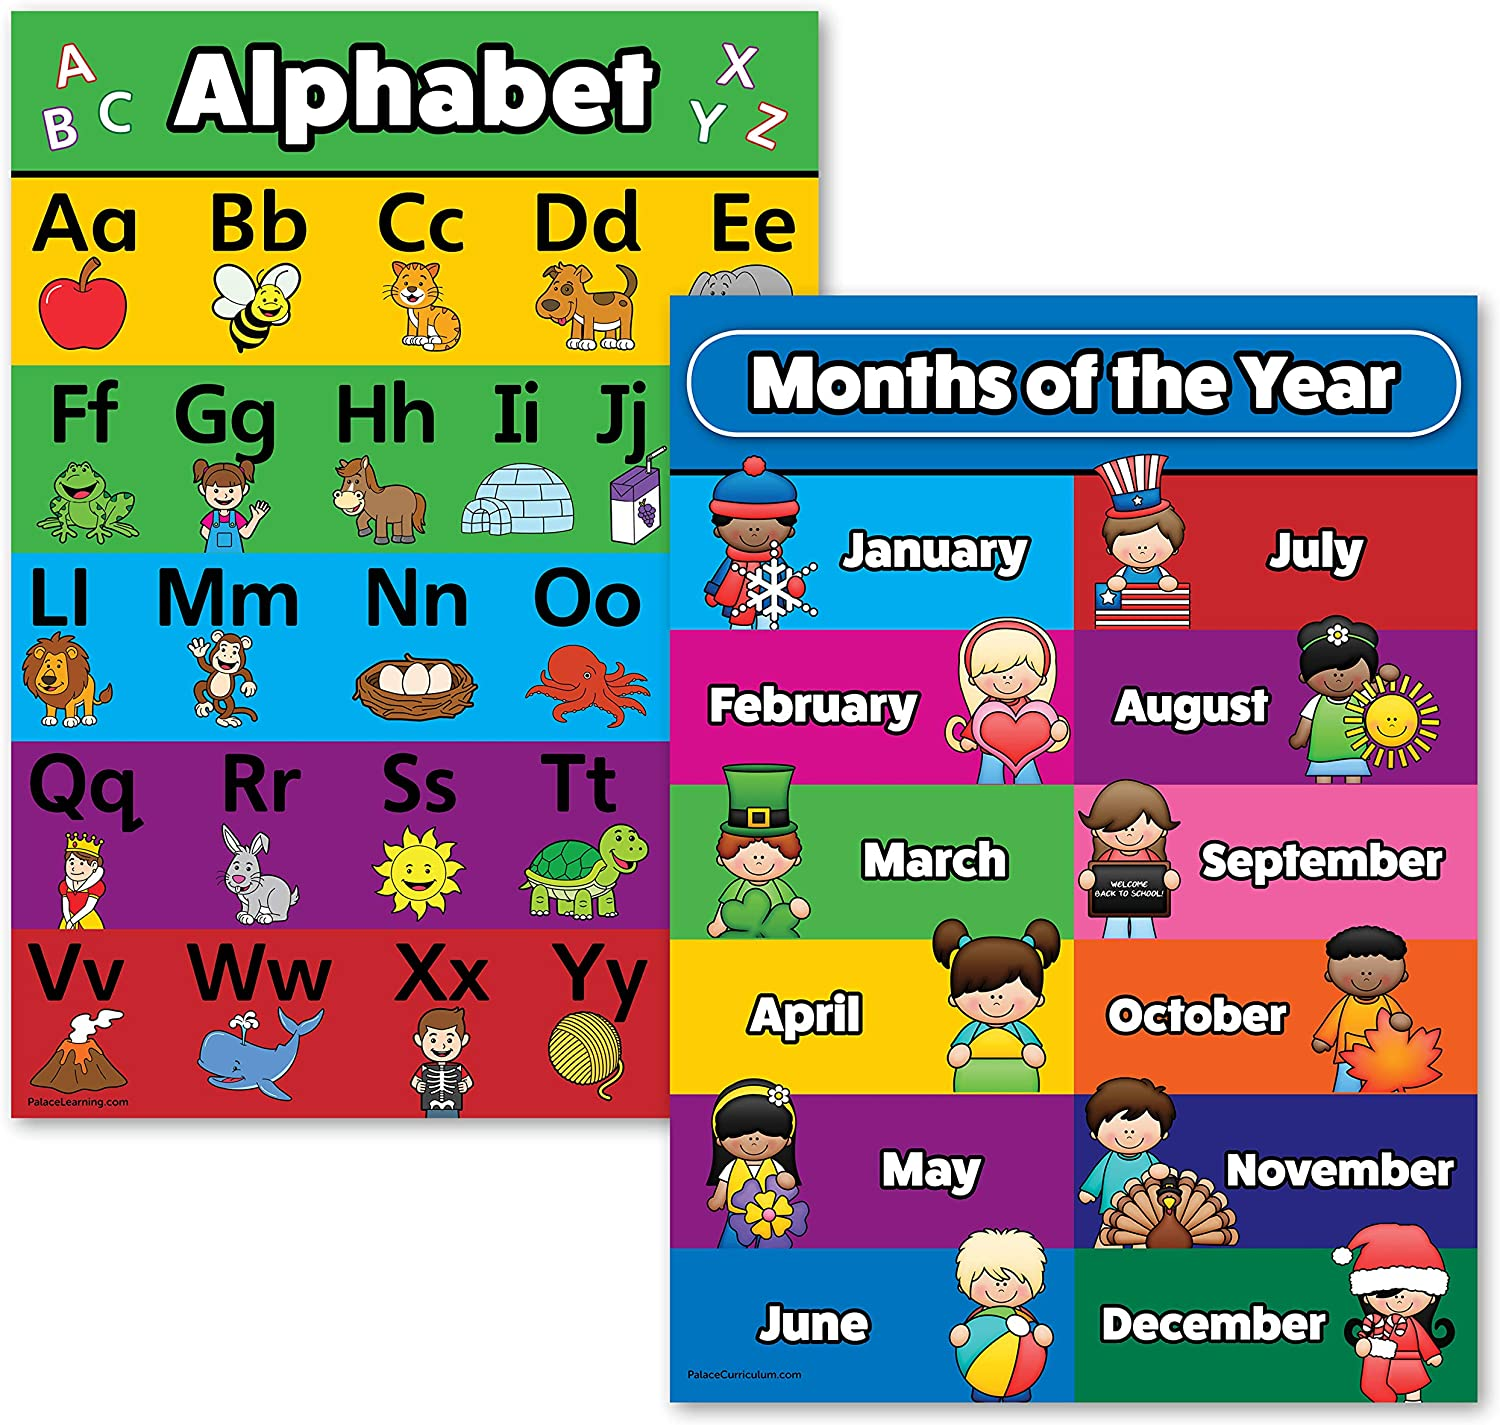 2 St/ück 18 x 24 Laminated Poster ABC Alphabet /& Months of The Year